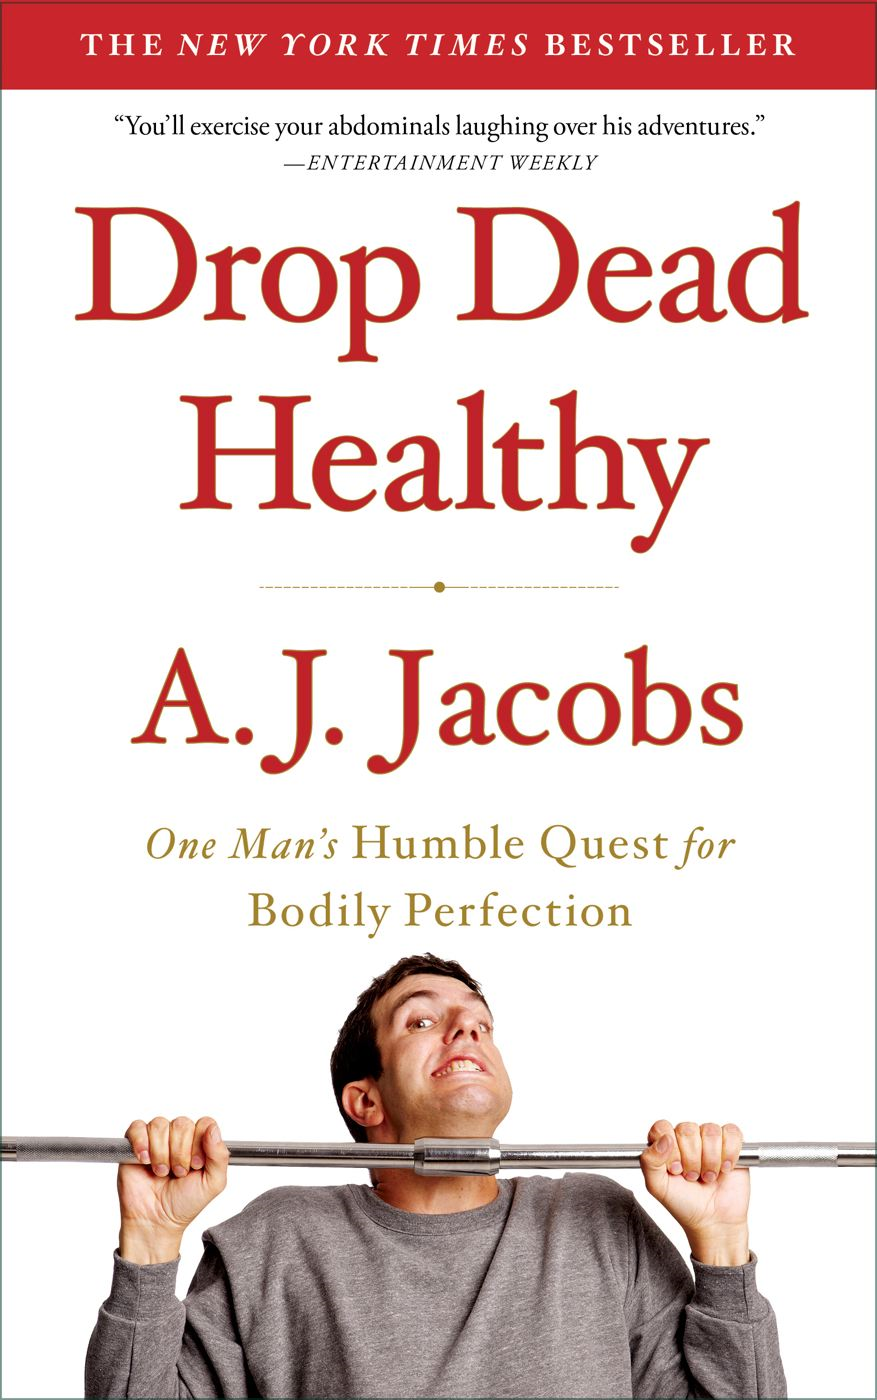 Drop Dead Healthy: One Man's Humble Quest for Bodily Perfection By: A. J. Jacobs